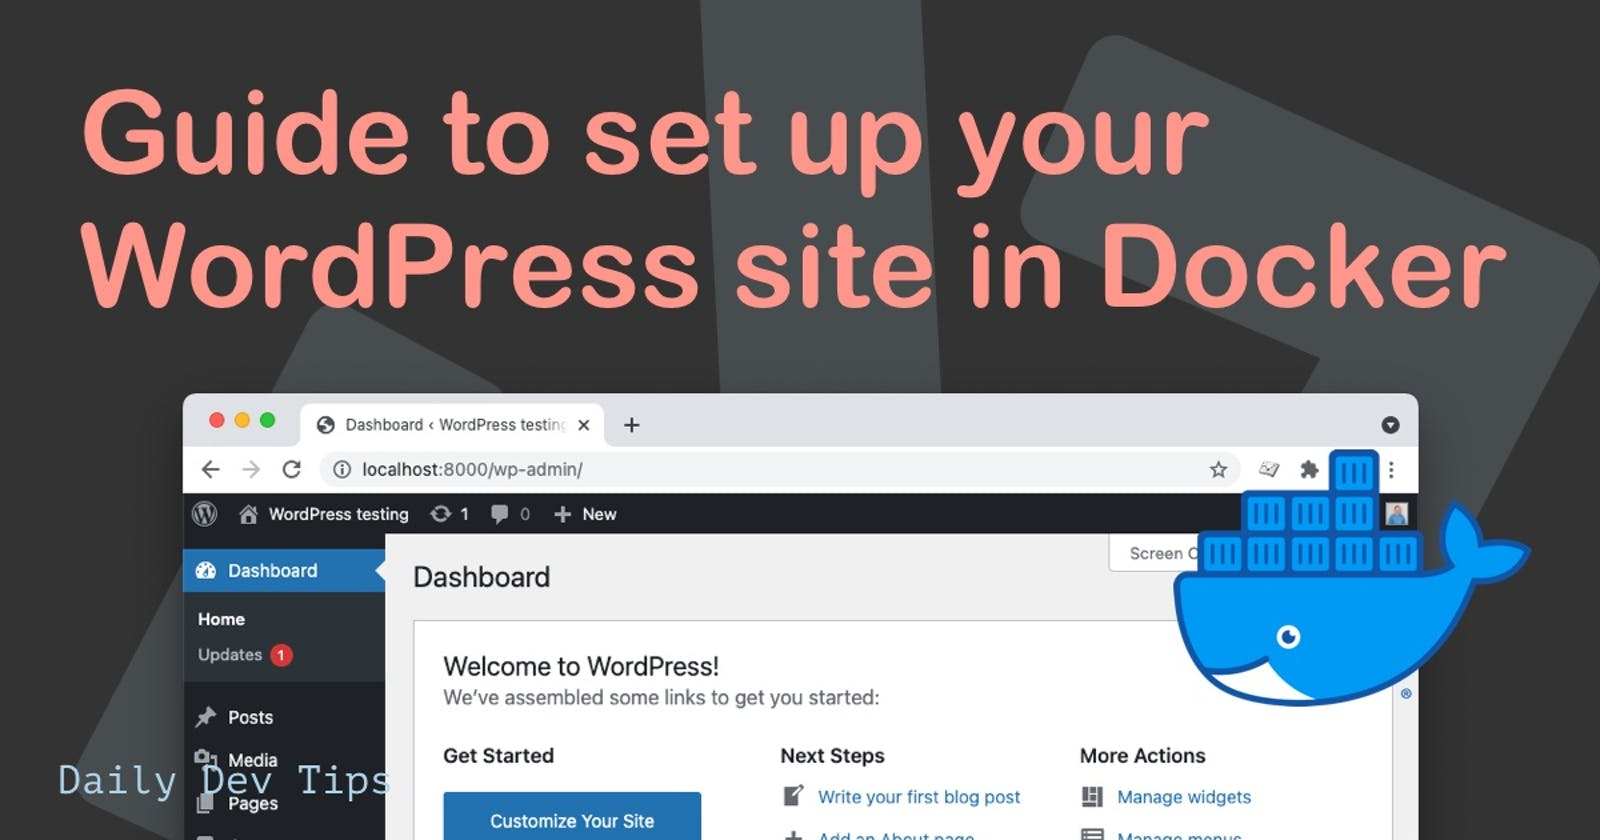 Guide to set up your WordPress site in Docker